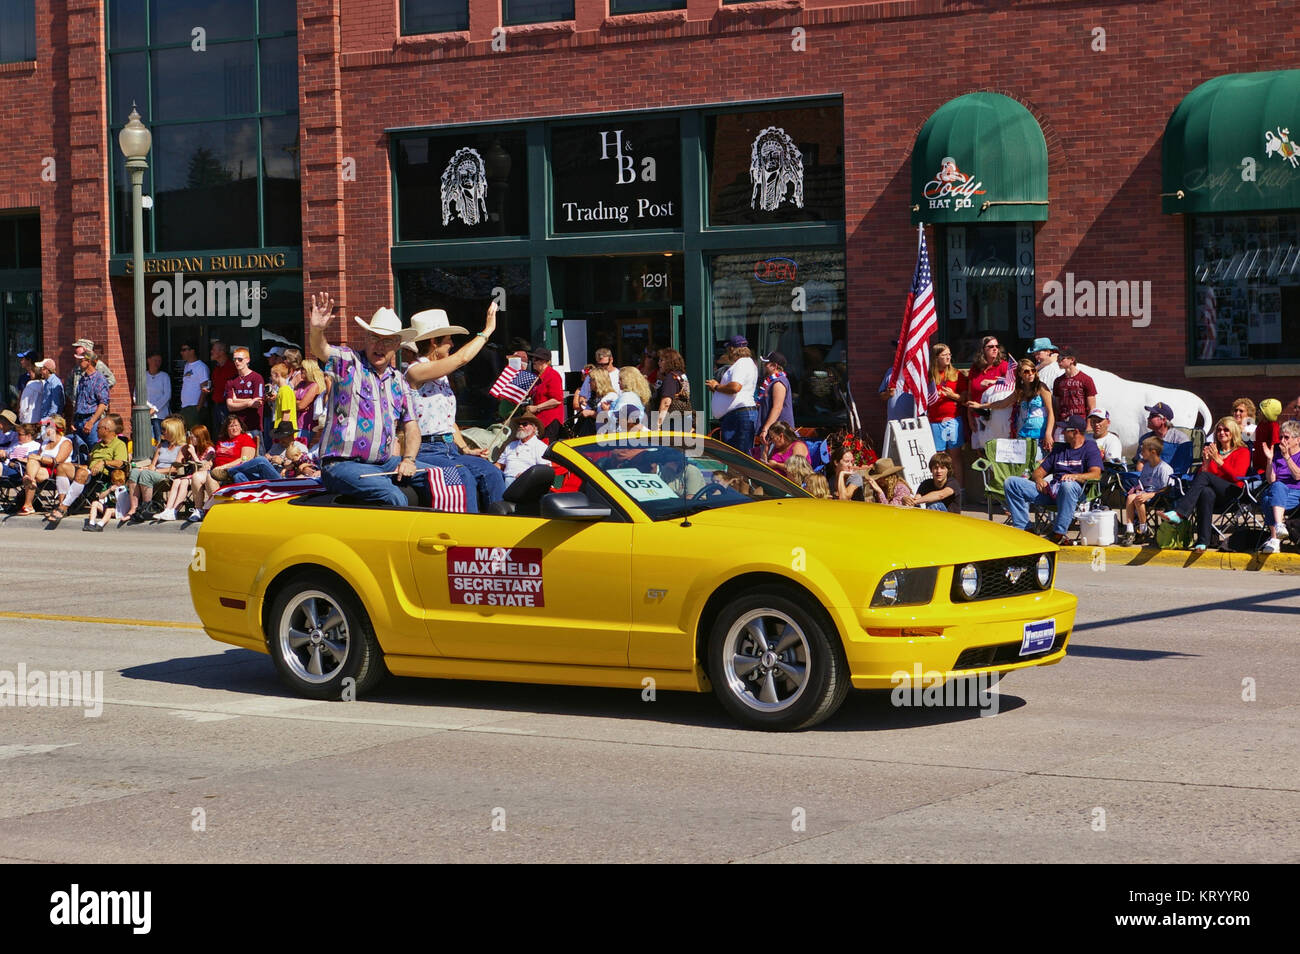 Cody, Wyoming, USA - July 4th, 2009 - Then Wyoming secretary of state Max Maxfield with his wife Gayla Maxfield - Stock Image